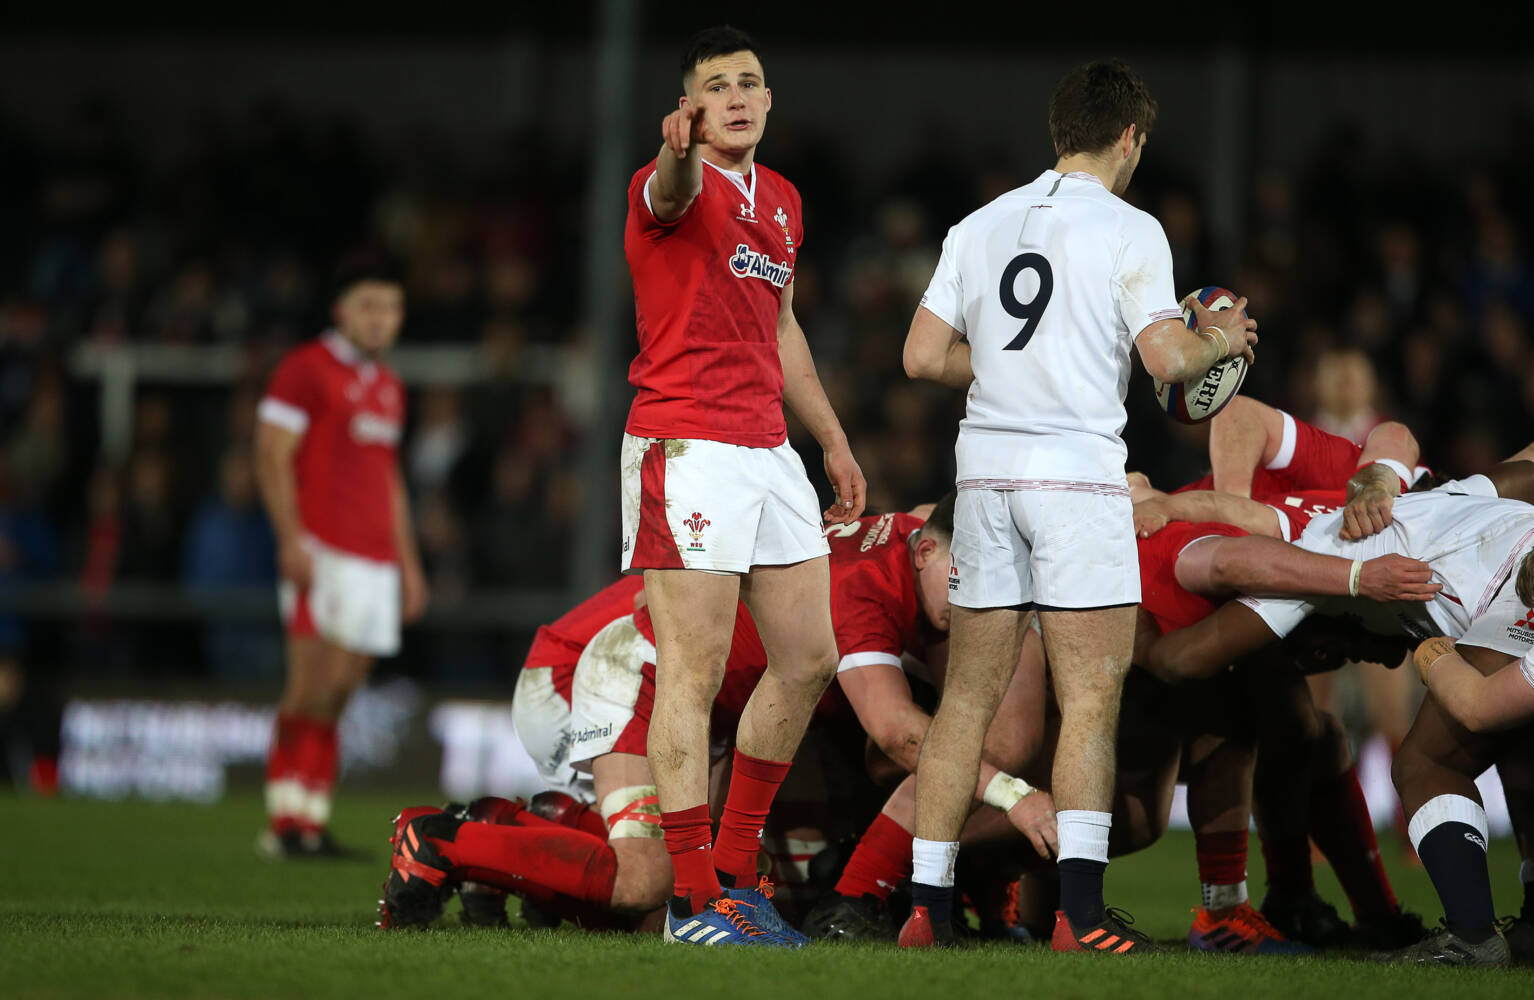 Bevan looks ahead after fine Six Nations